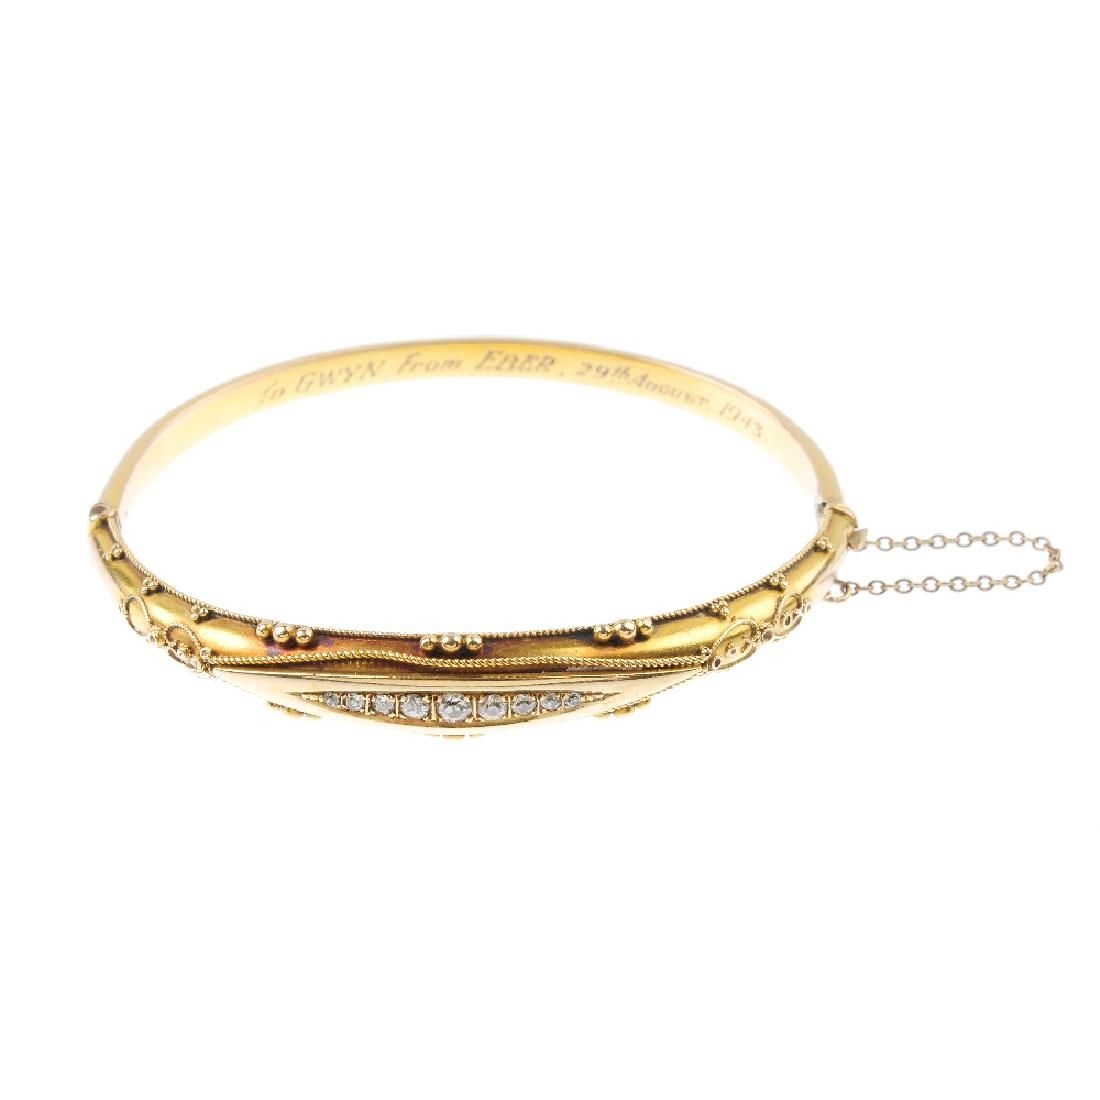 A late Victorian 15ct gold diamond hinged bangle.